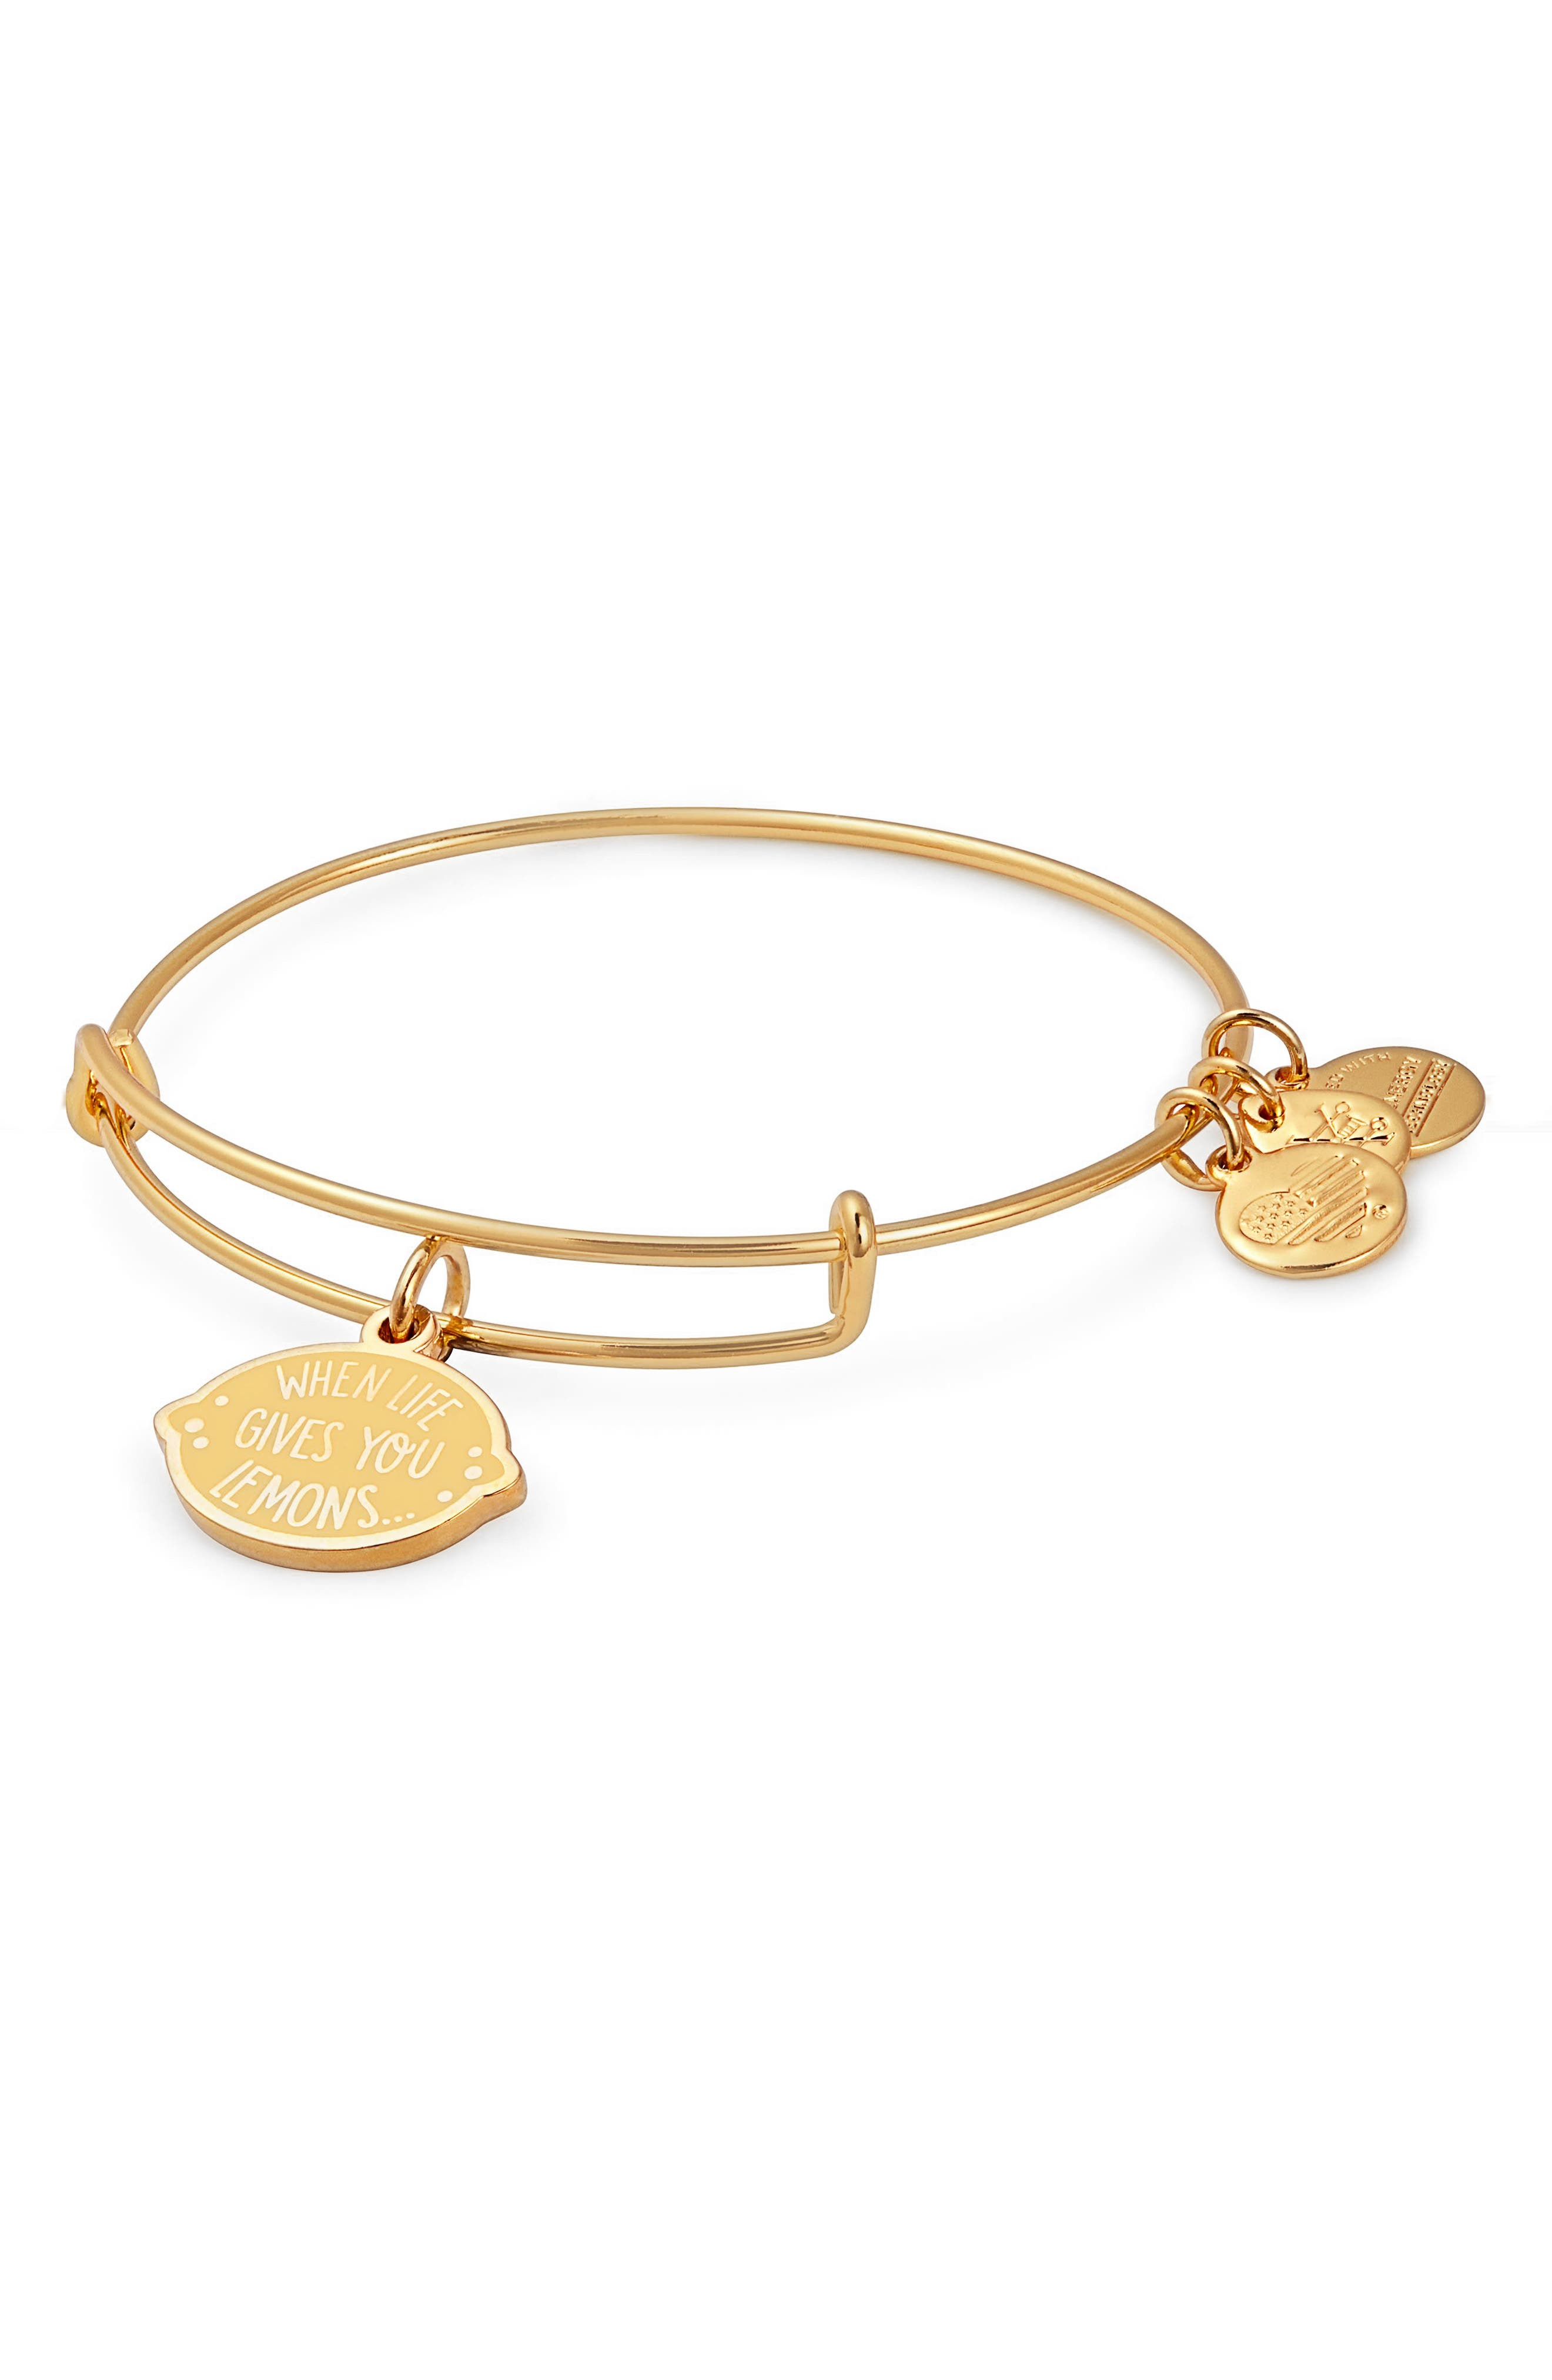 Charity by Design When Life Gives You Lemons Charm Bracelet,                         Main,                         color, Gold